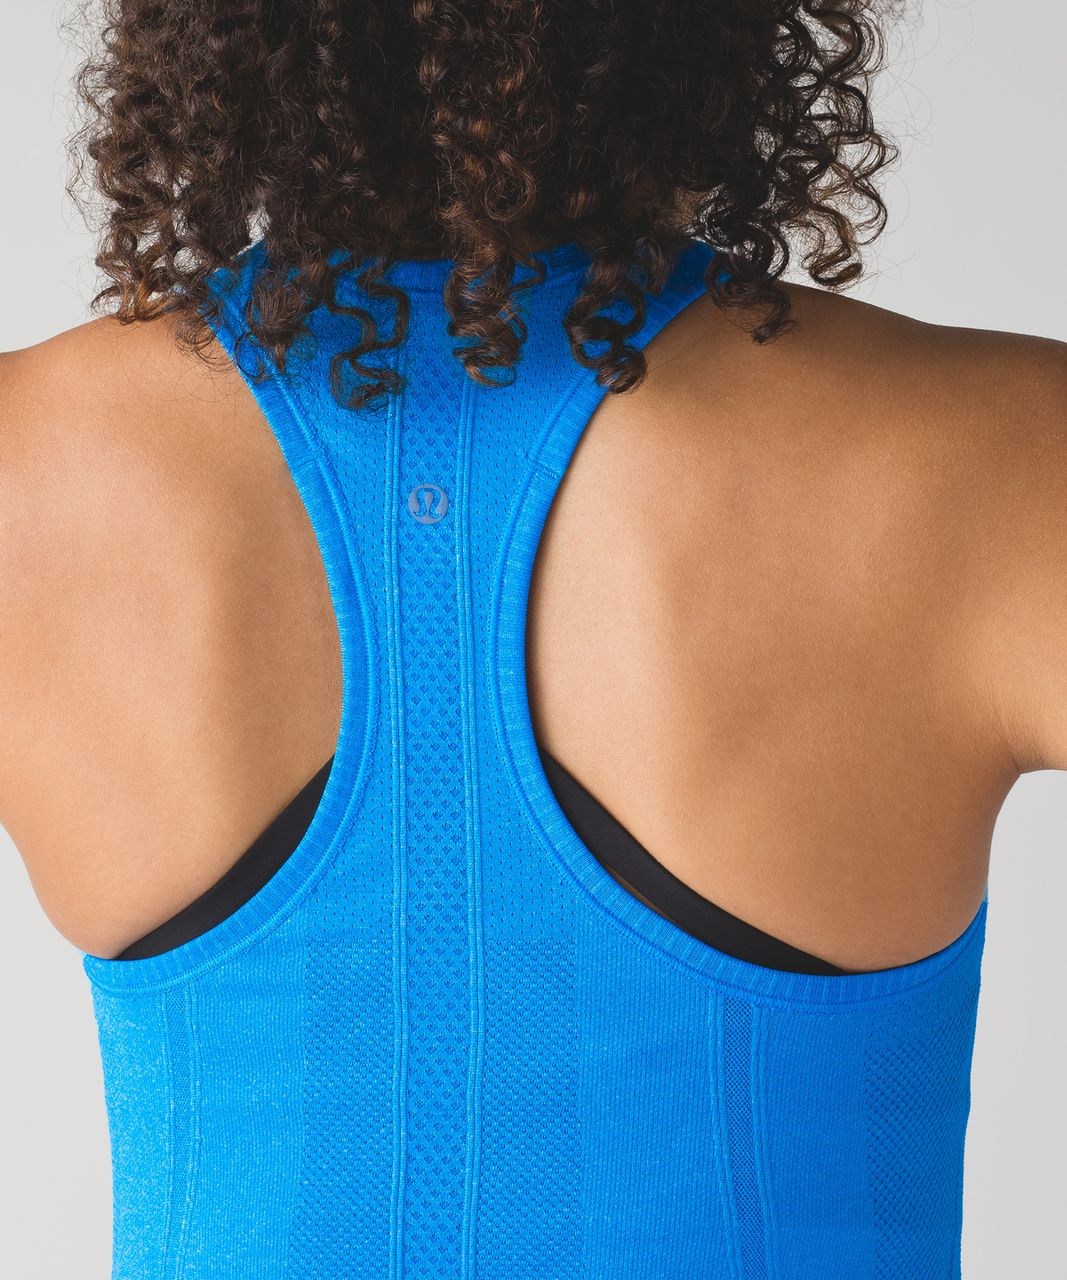 Lululemon Swiftly Tech Racerback - Heathered Beach Blanket Blue